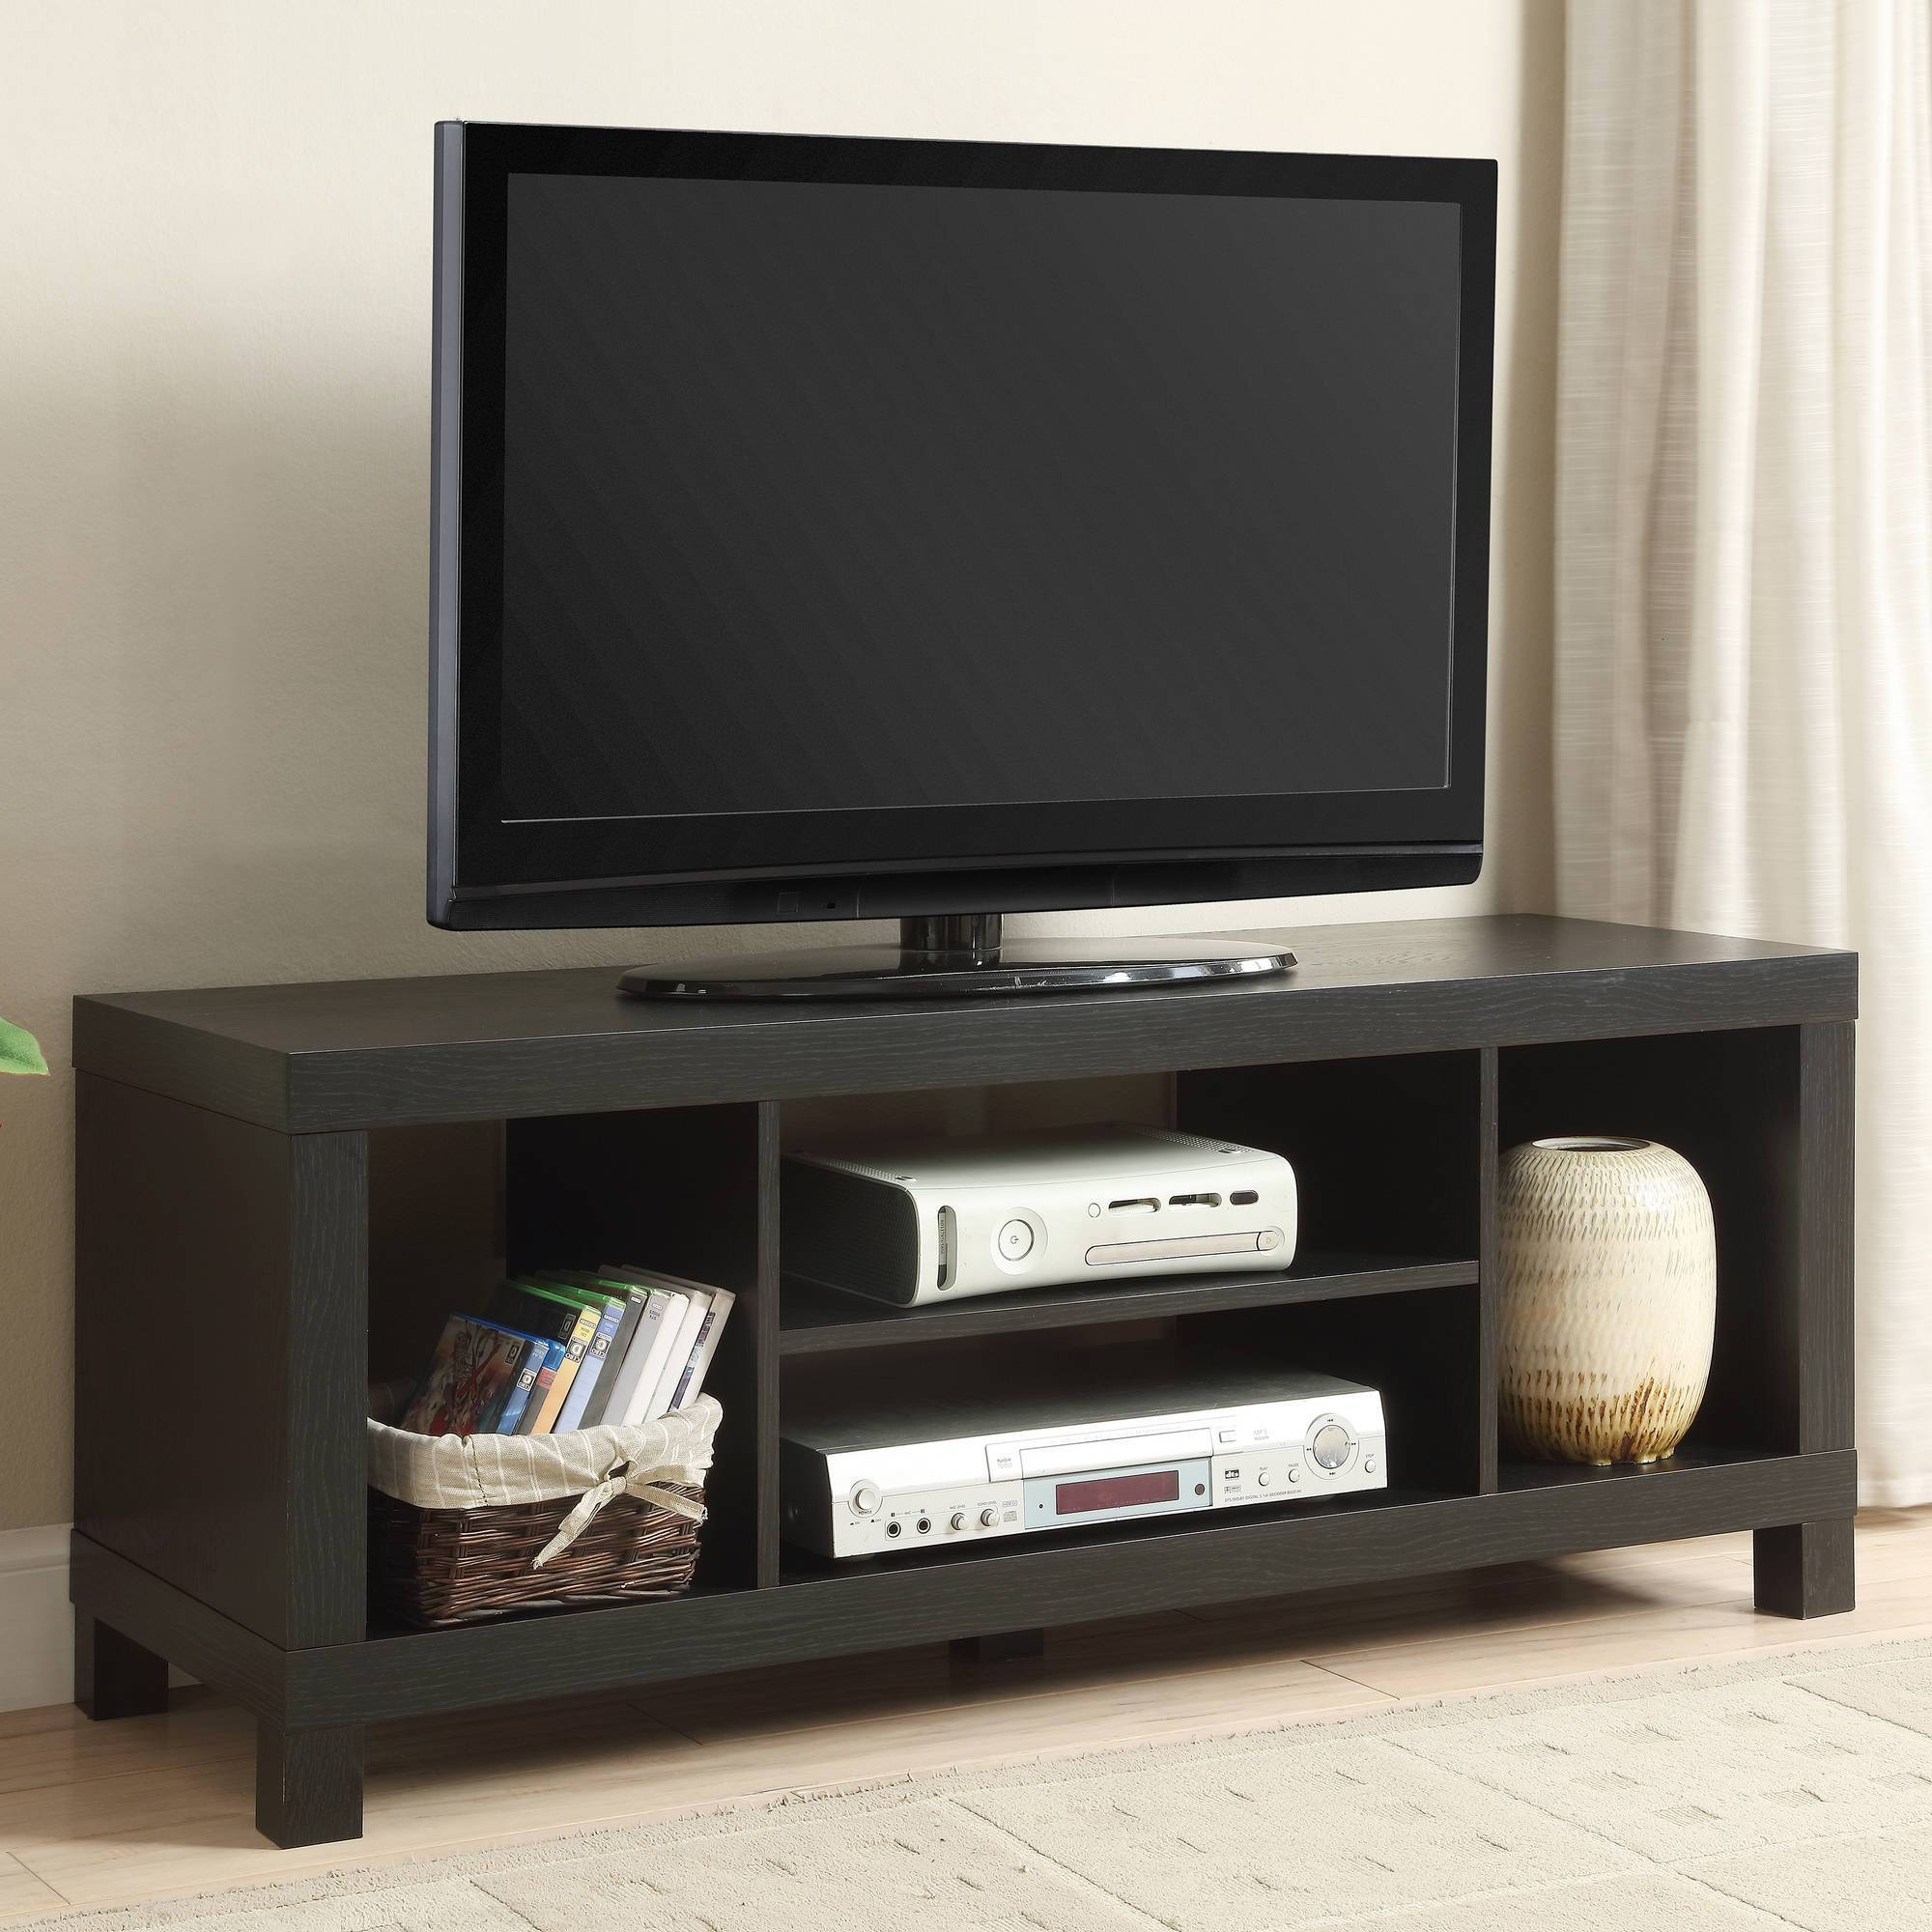 15 Best Ideas Of Emerson Tv Stands